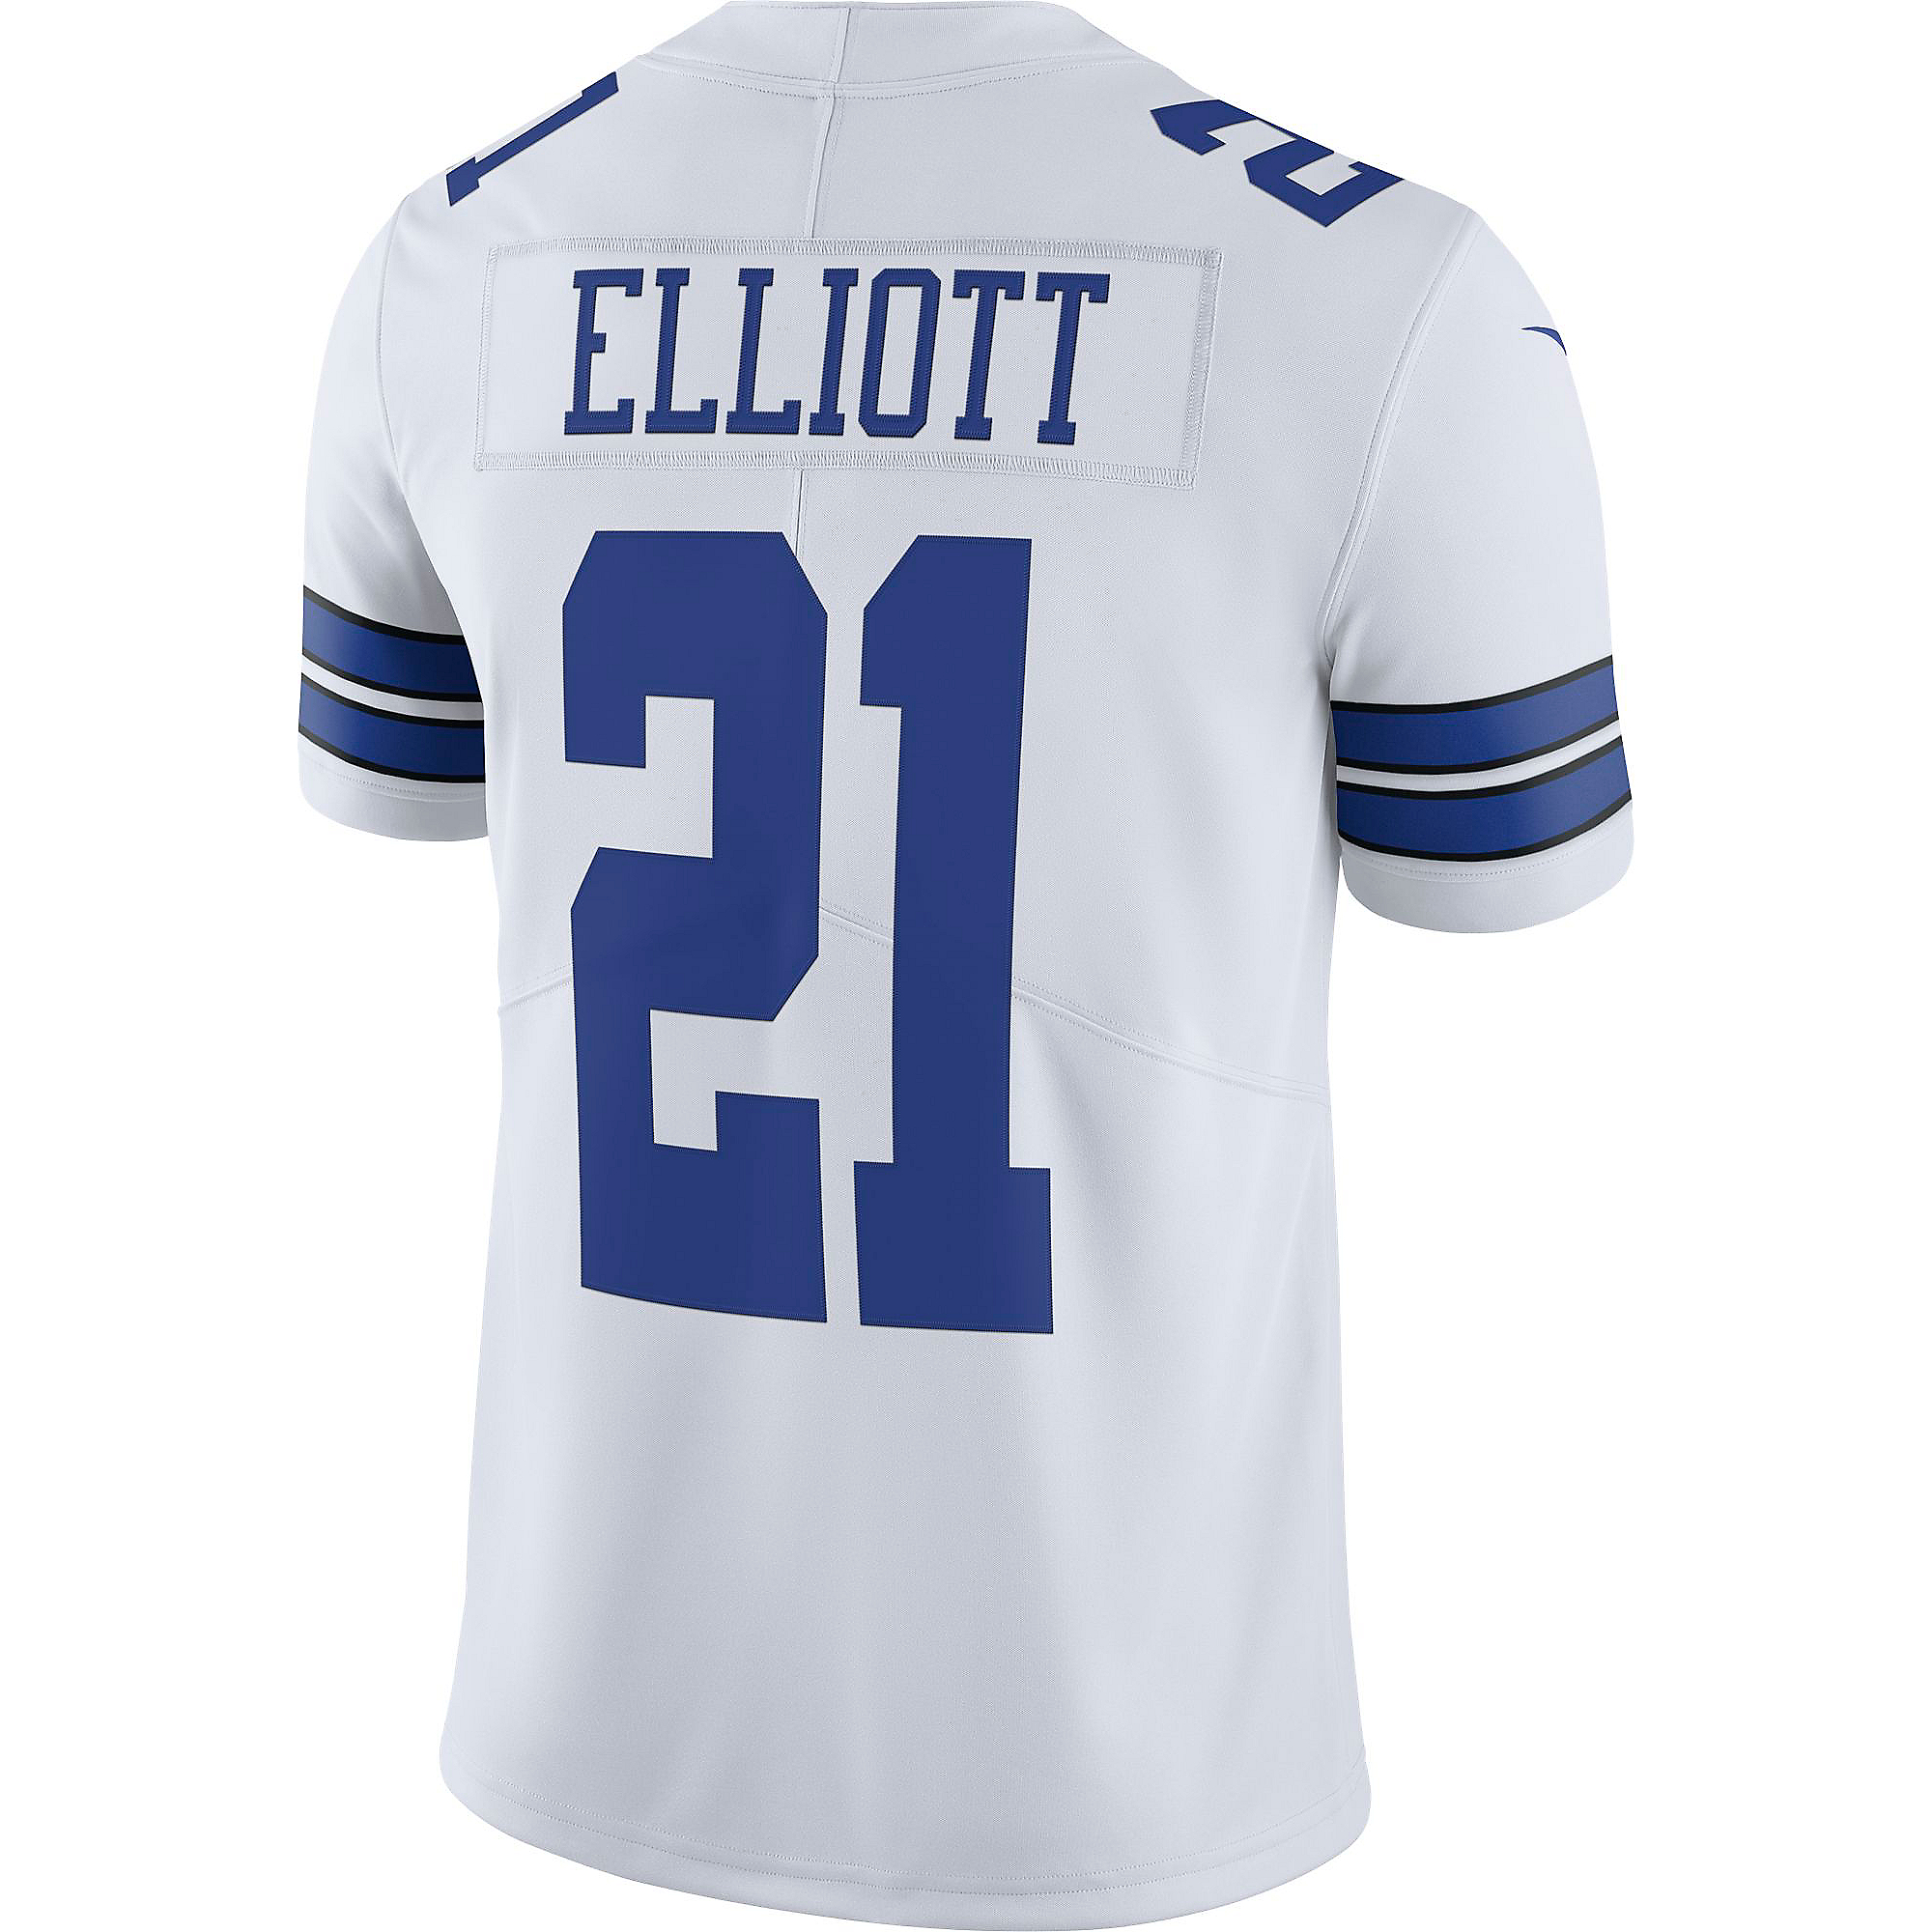 uk availability 80988 26215 Dallas Cowboys Ezekiel Elliott #21 Nike Vapor Untouchable ...